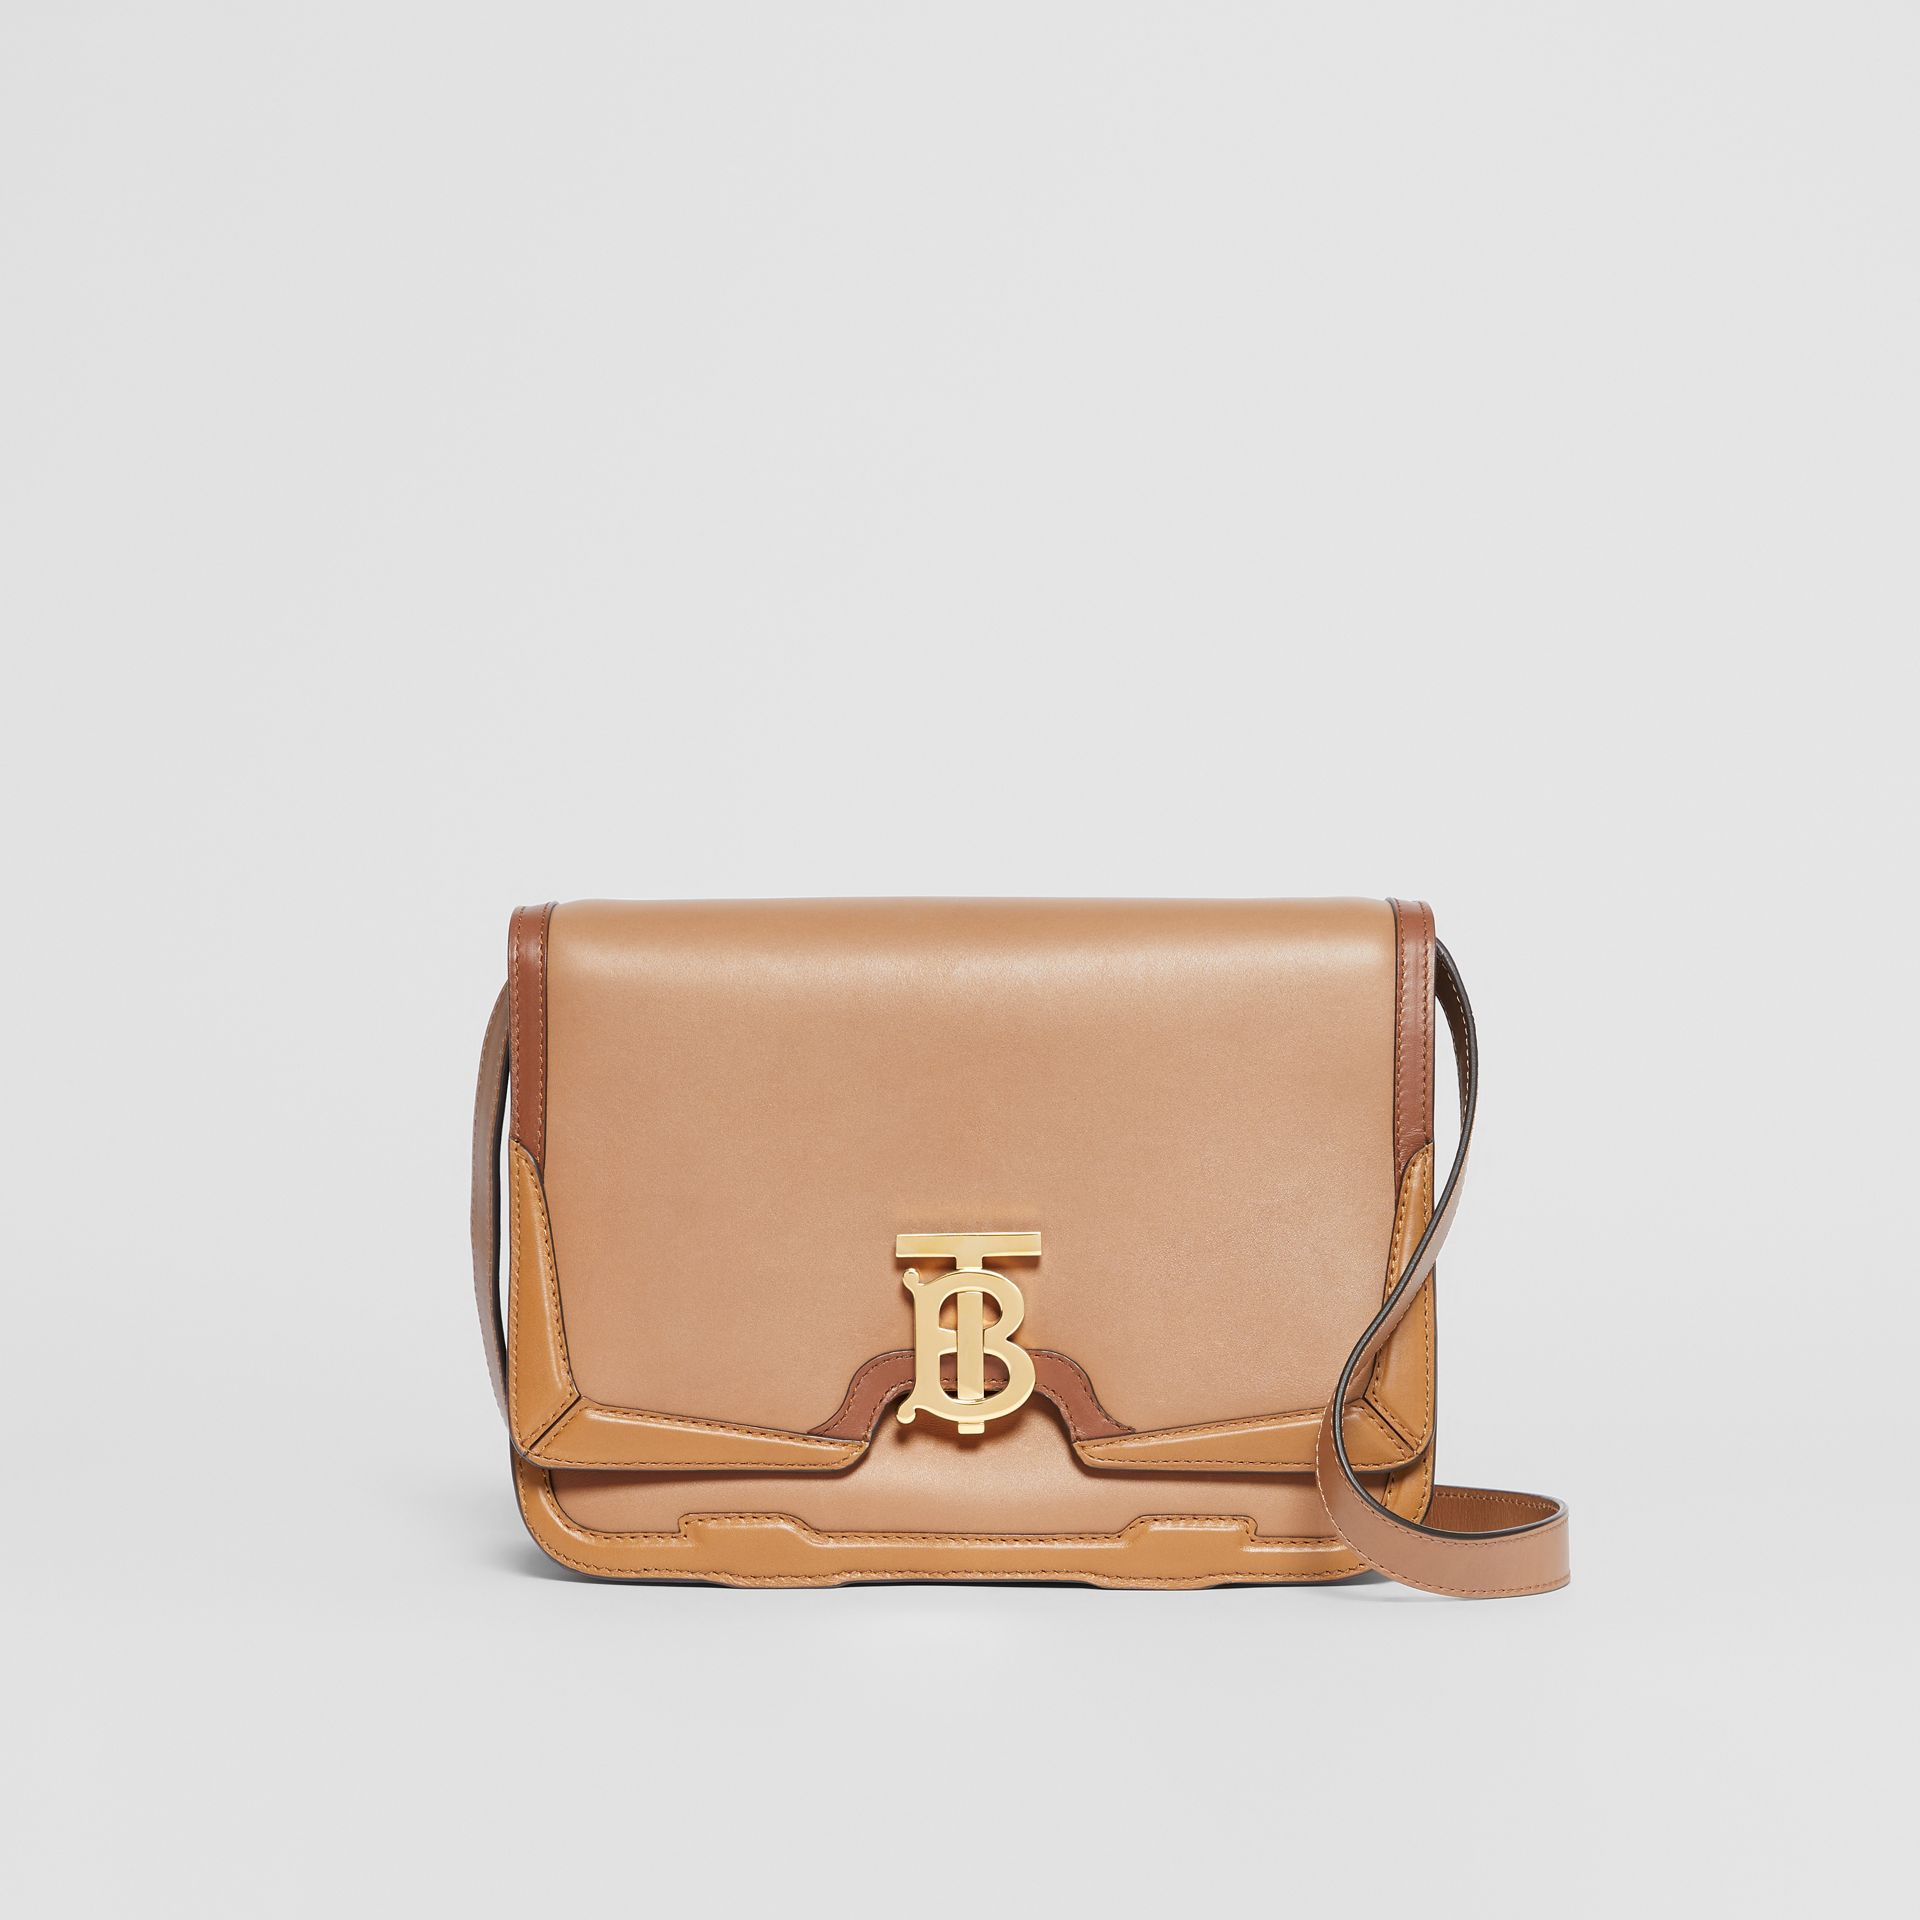 Medium Appliqué Leather TB Bag in Warm Camel - Women | Burberry - gallery image 0